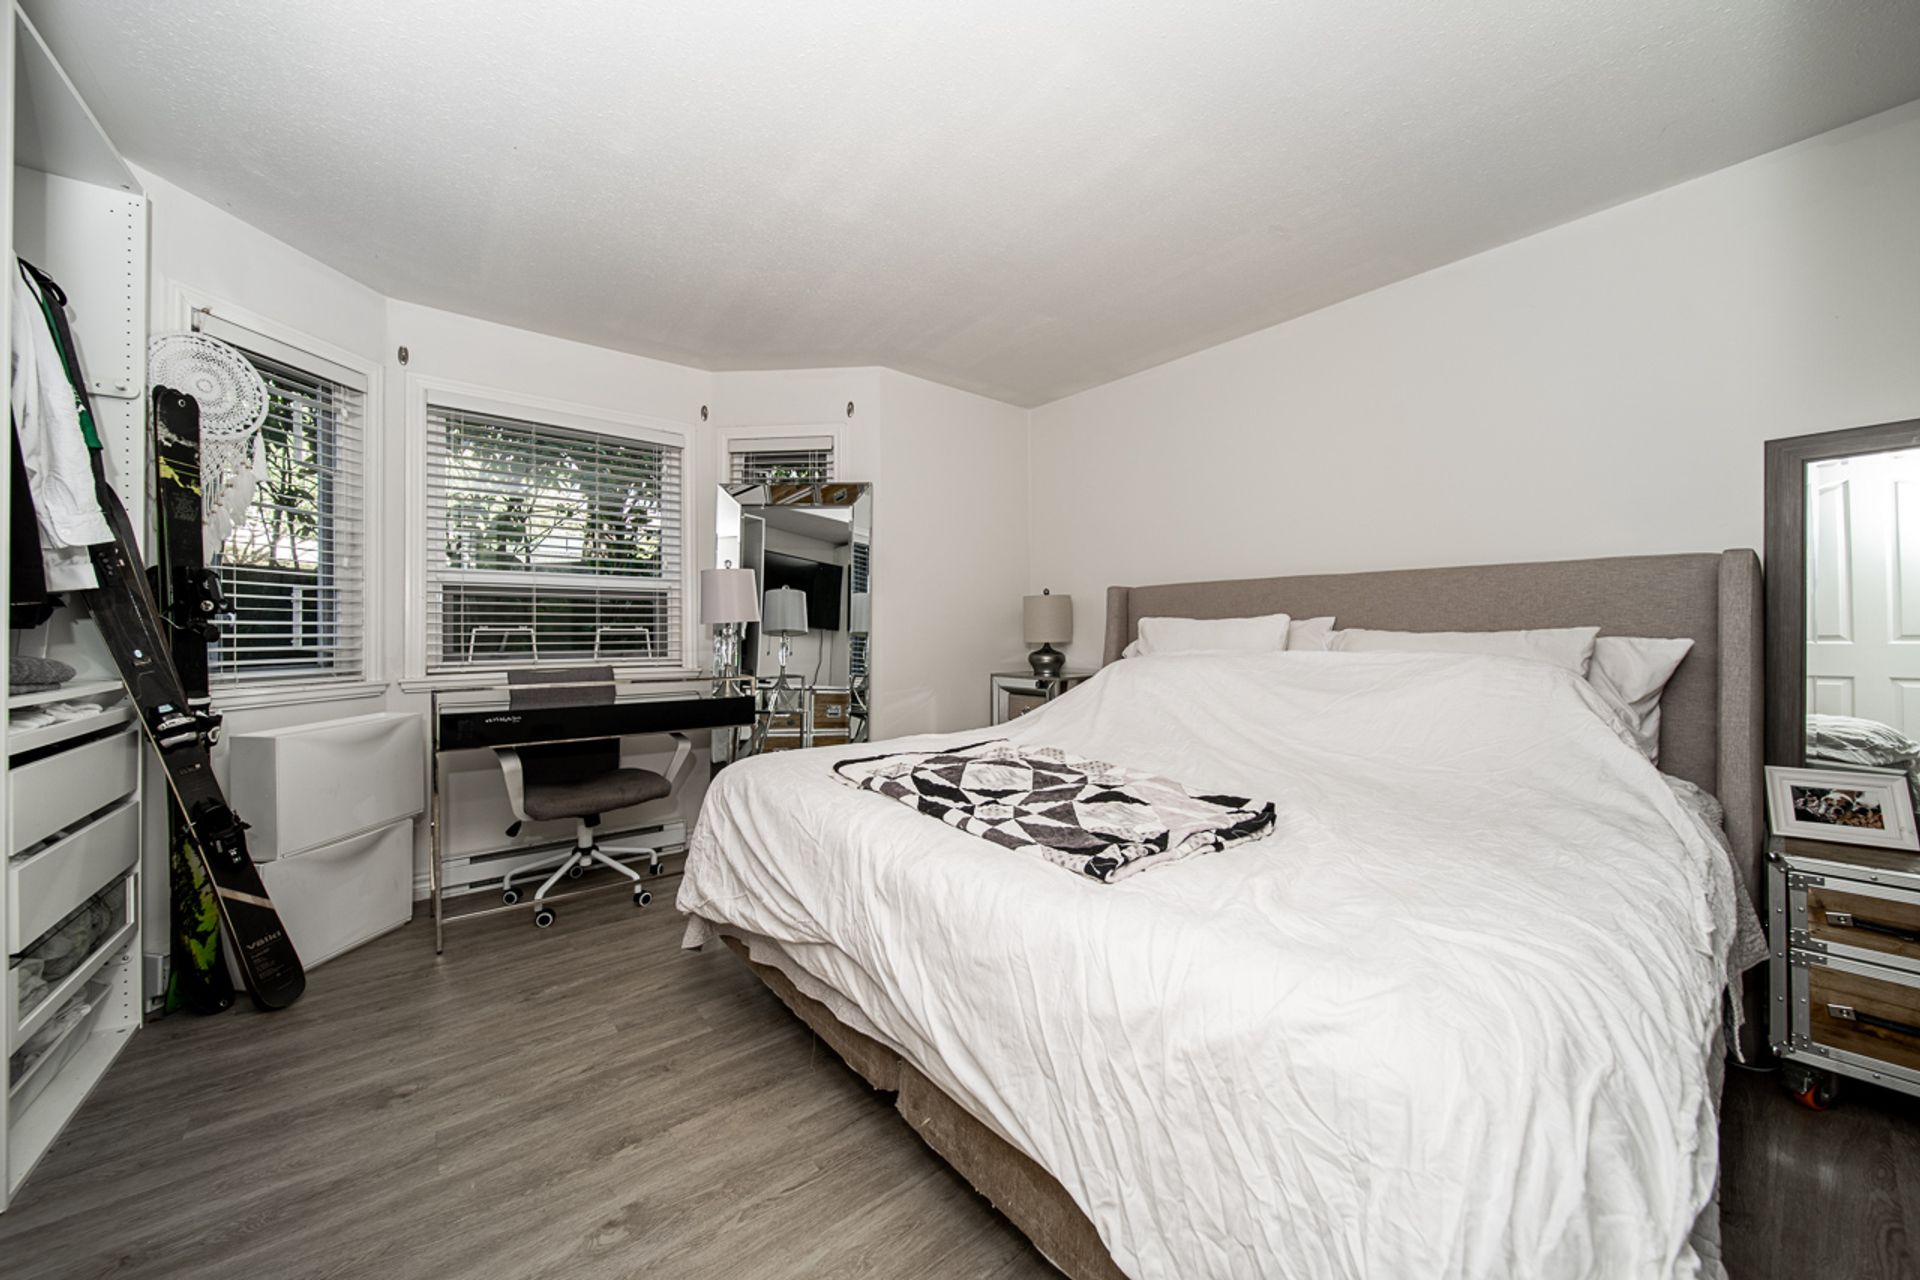 unit-101-175-west-4th-street-north-vancouver-17 at 101 - 175 W 4th Street, Lower Lonsdale, North Vancouver